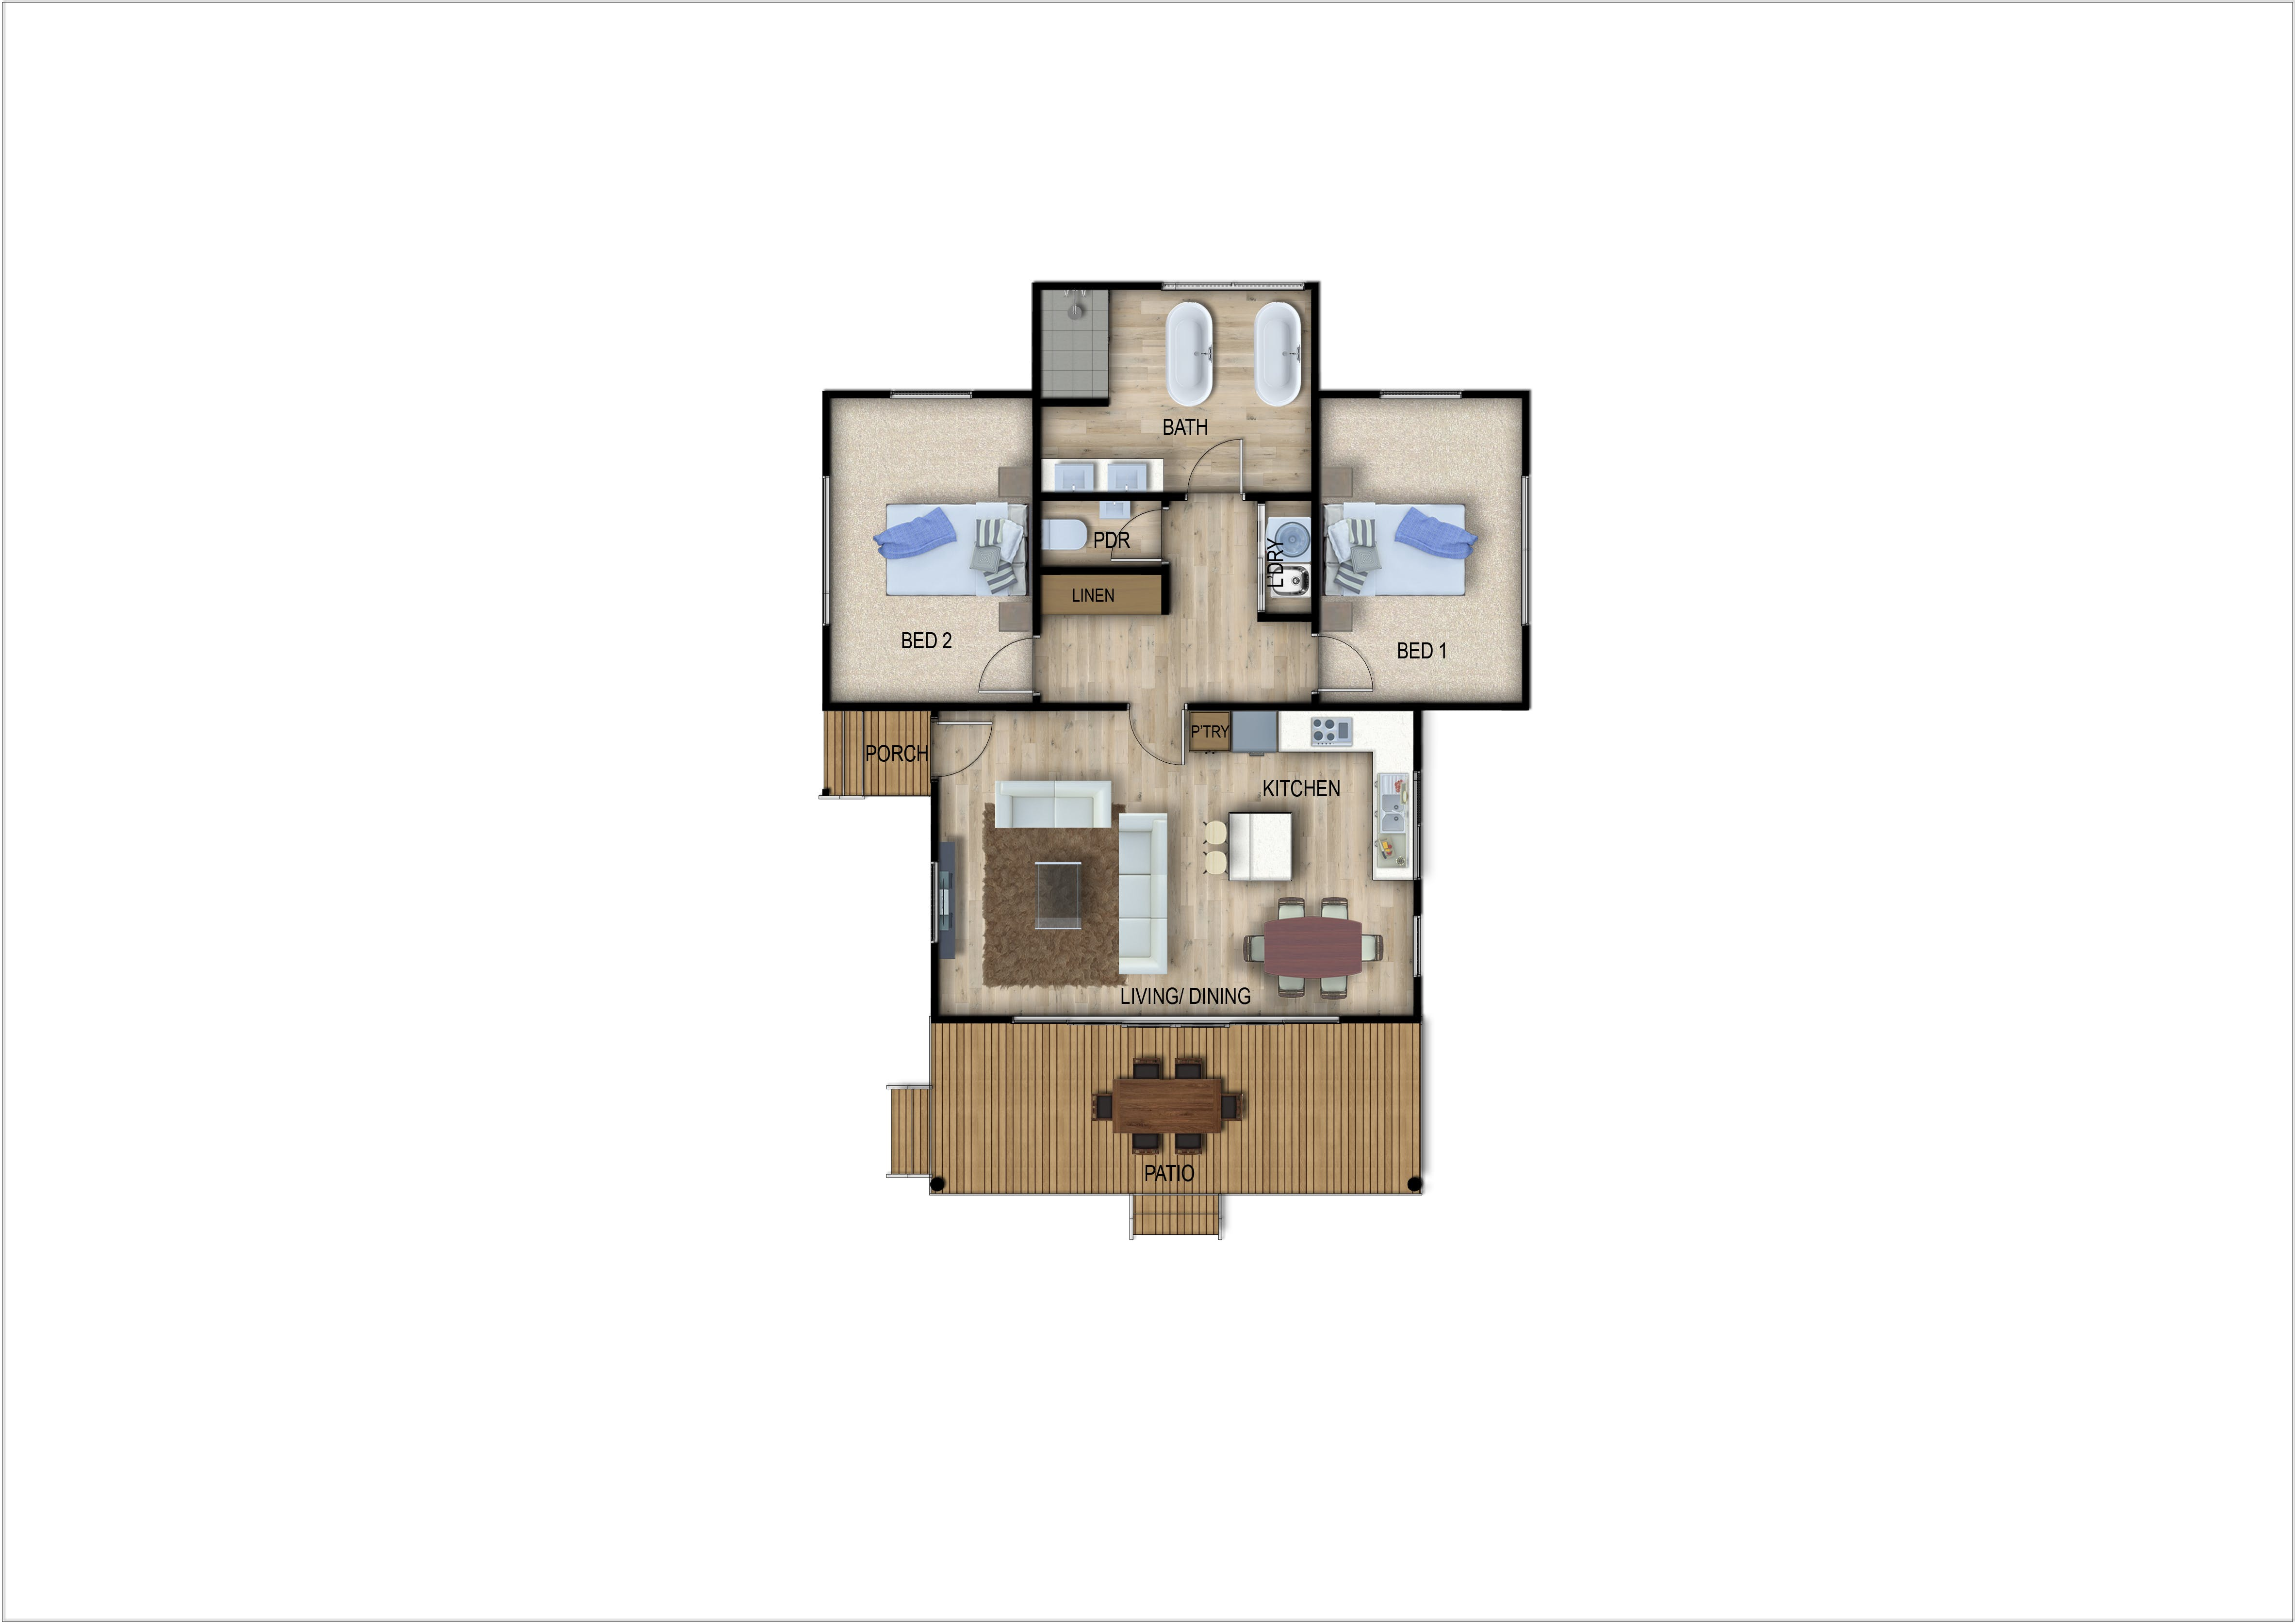 Nihgt Sky Cottage floor plan.